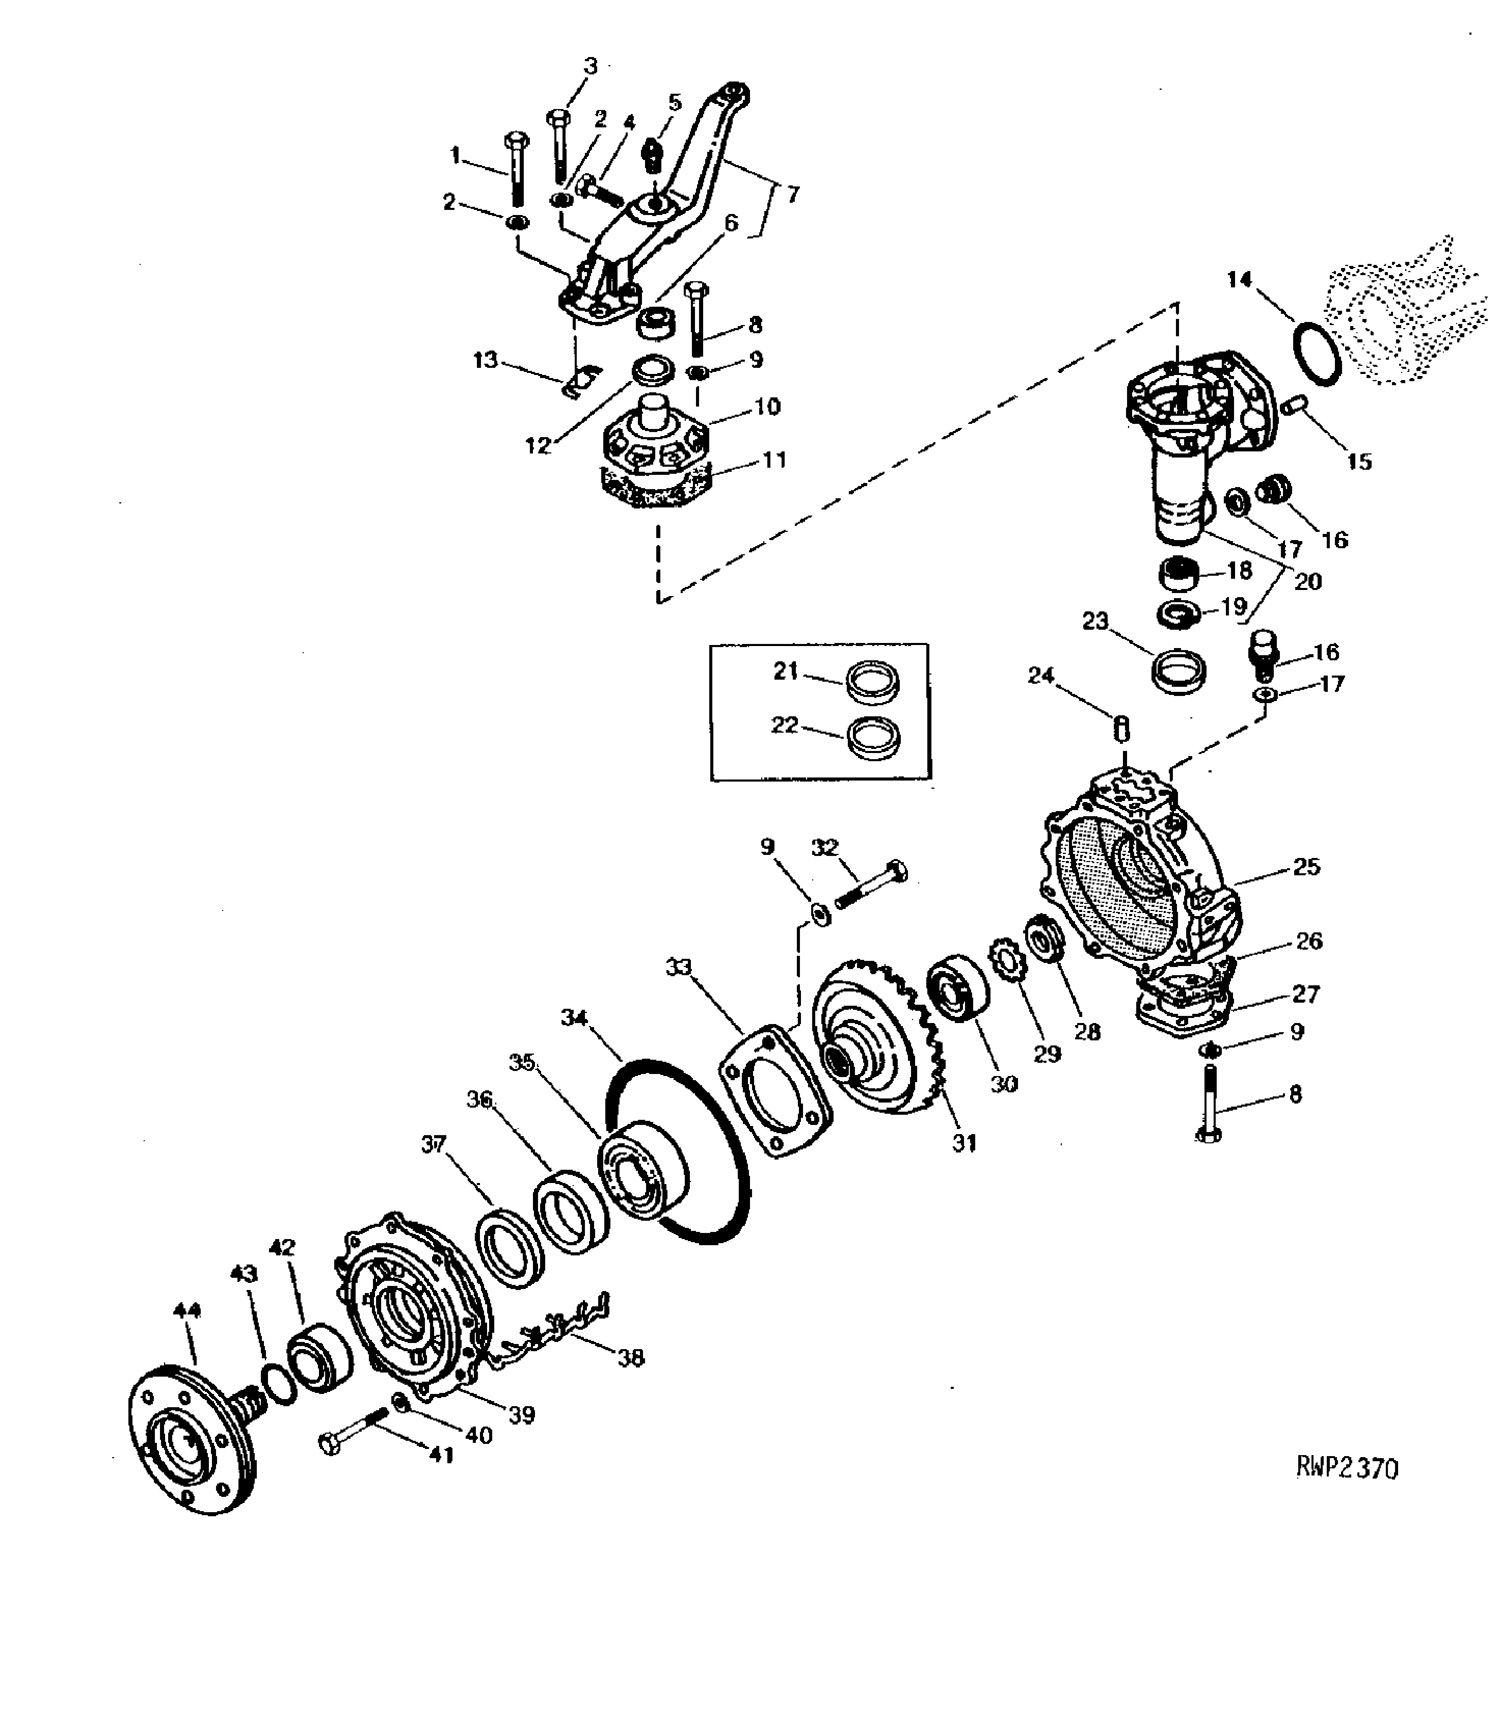 Diagram Routing Drive Belt 1997 345 John Deere Riding Mower 572093 furthermore M665 John Deere Wiring Diagrams additionally Wiring Diagram For John Deere 1010 moreover Polaris Atv Carburetor Diagram further John Deere 420 Garden Tractor Wiring Diagram. on wiring diagram for john deere 425